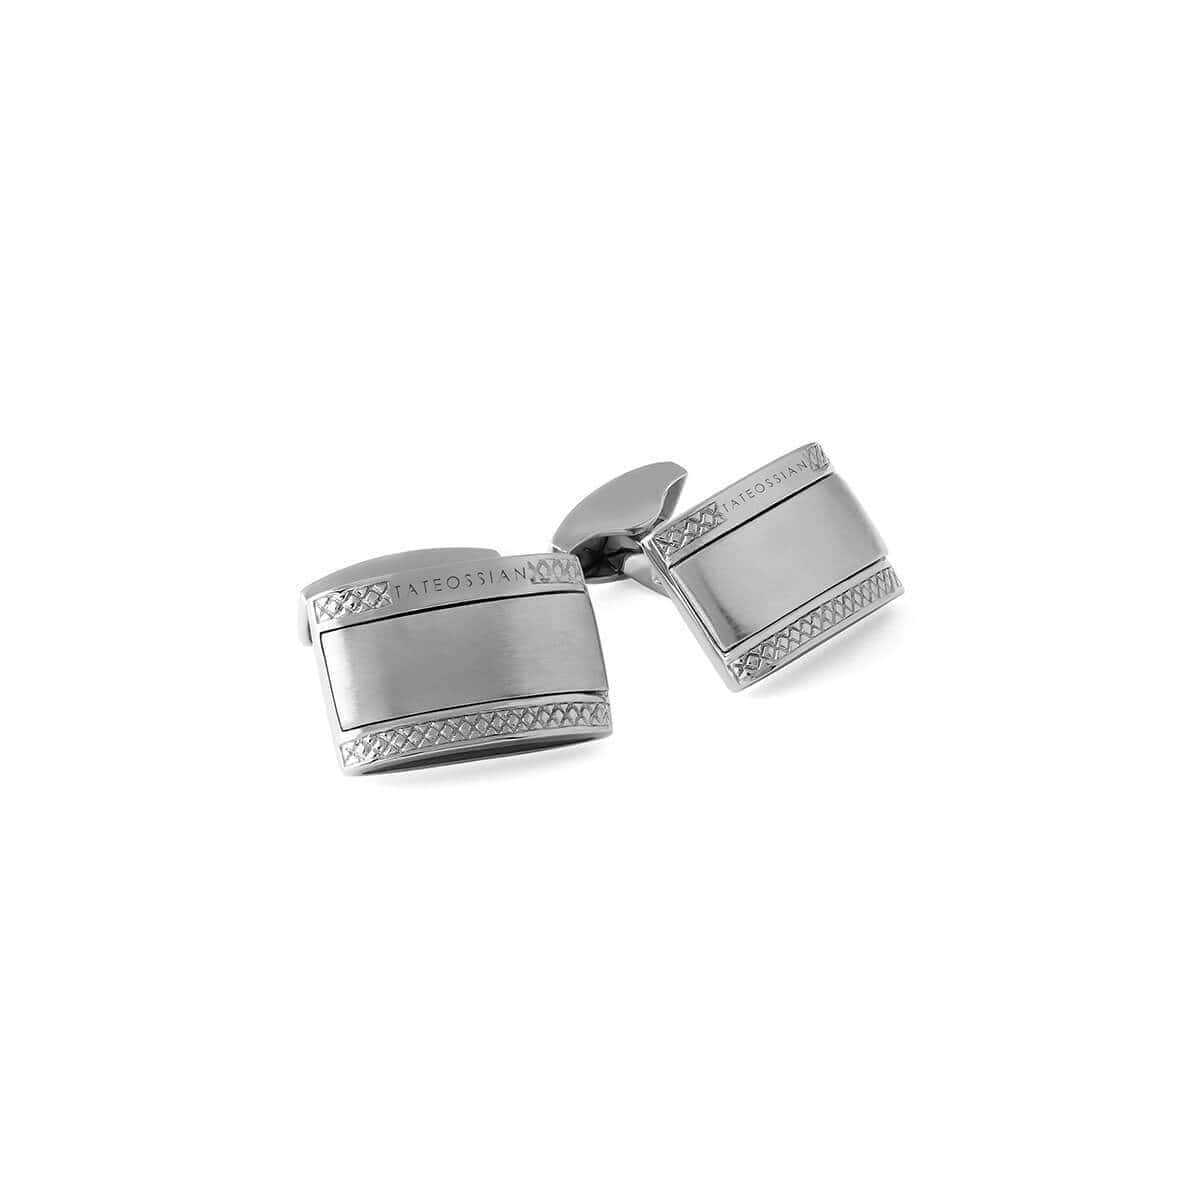 Signature Rectangle Cufflinks in Sterling Silver